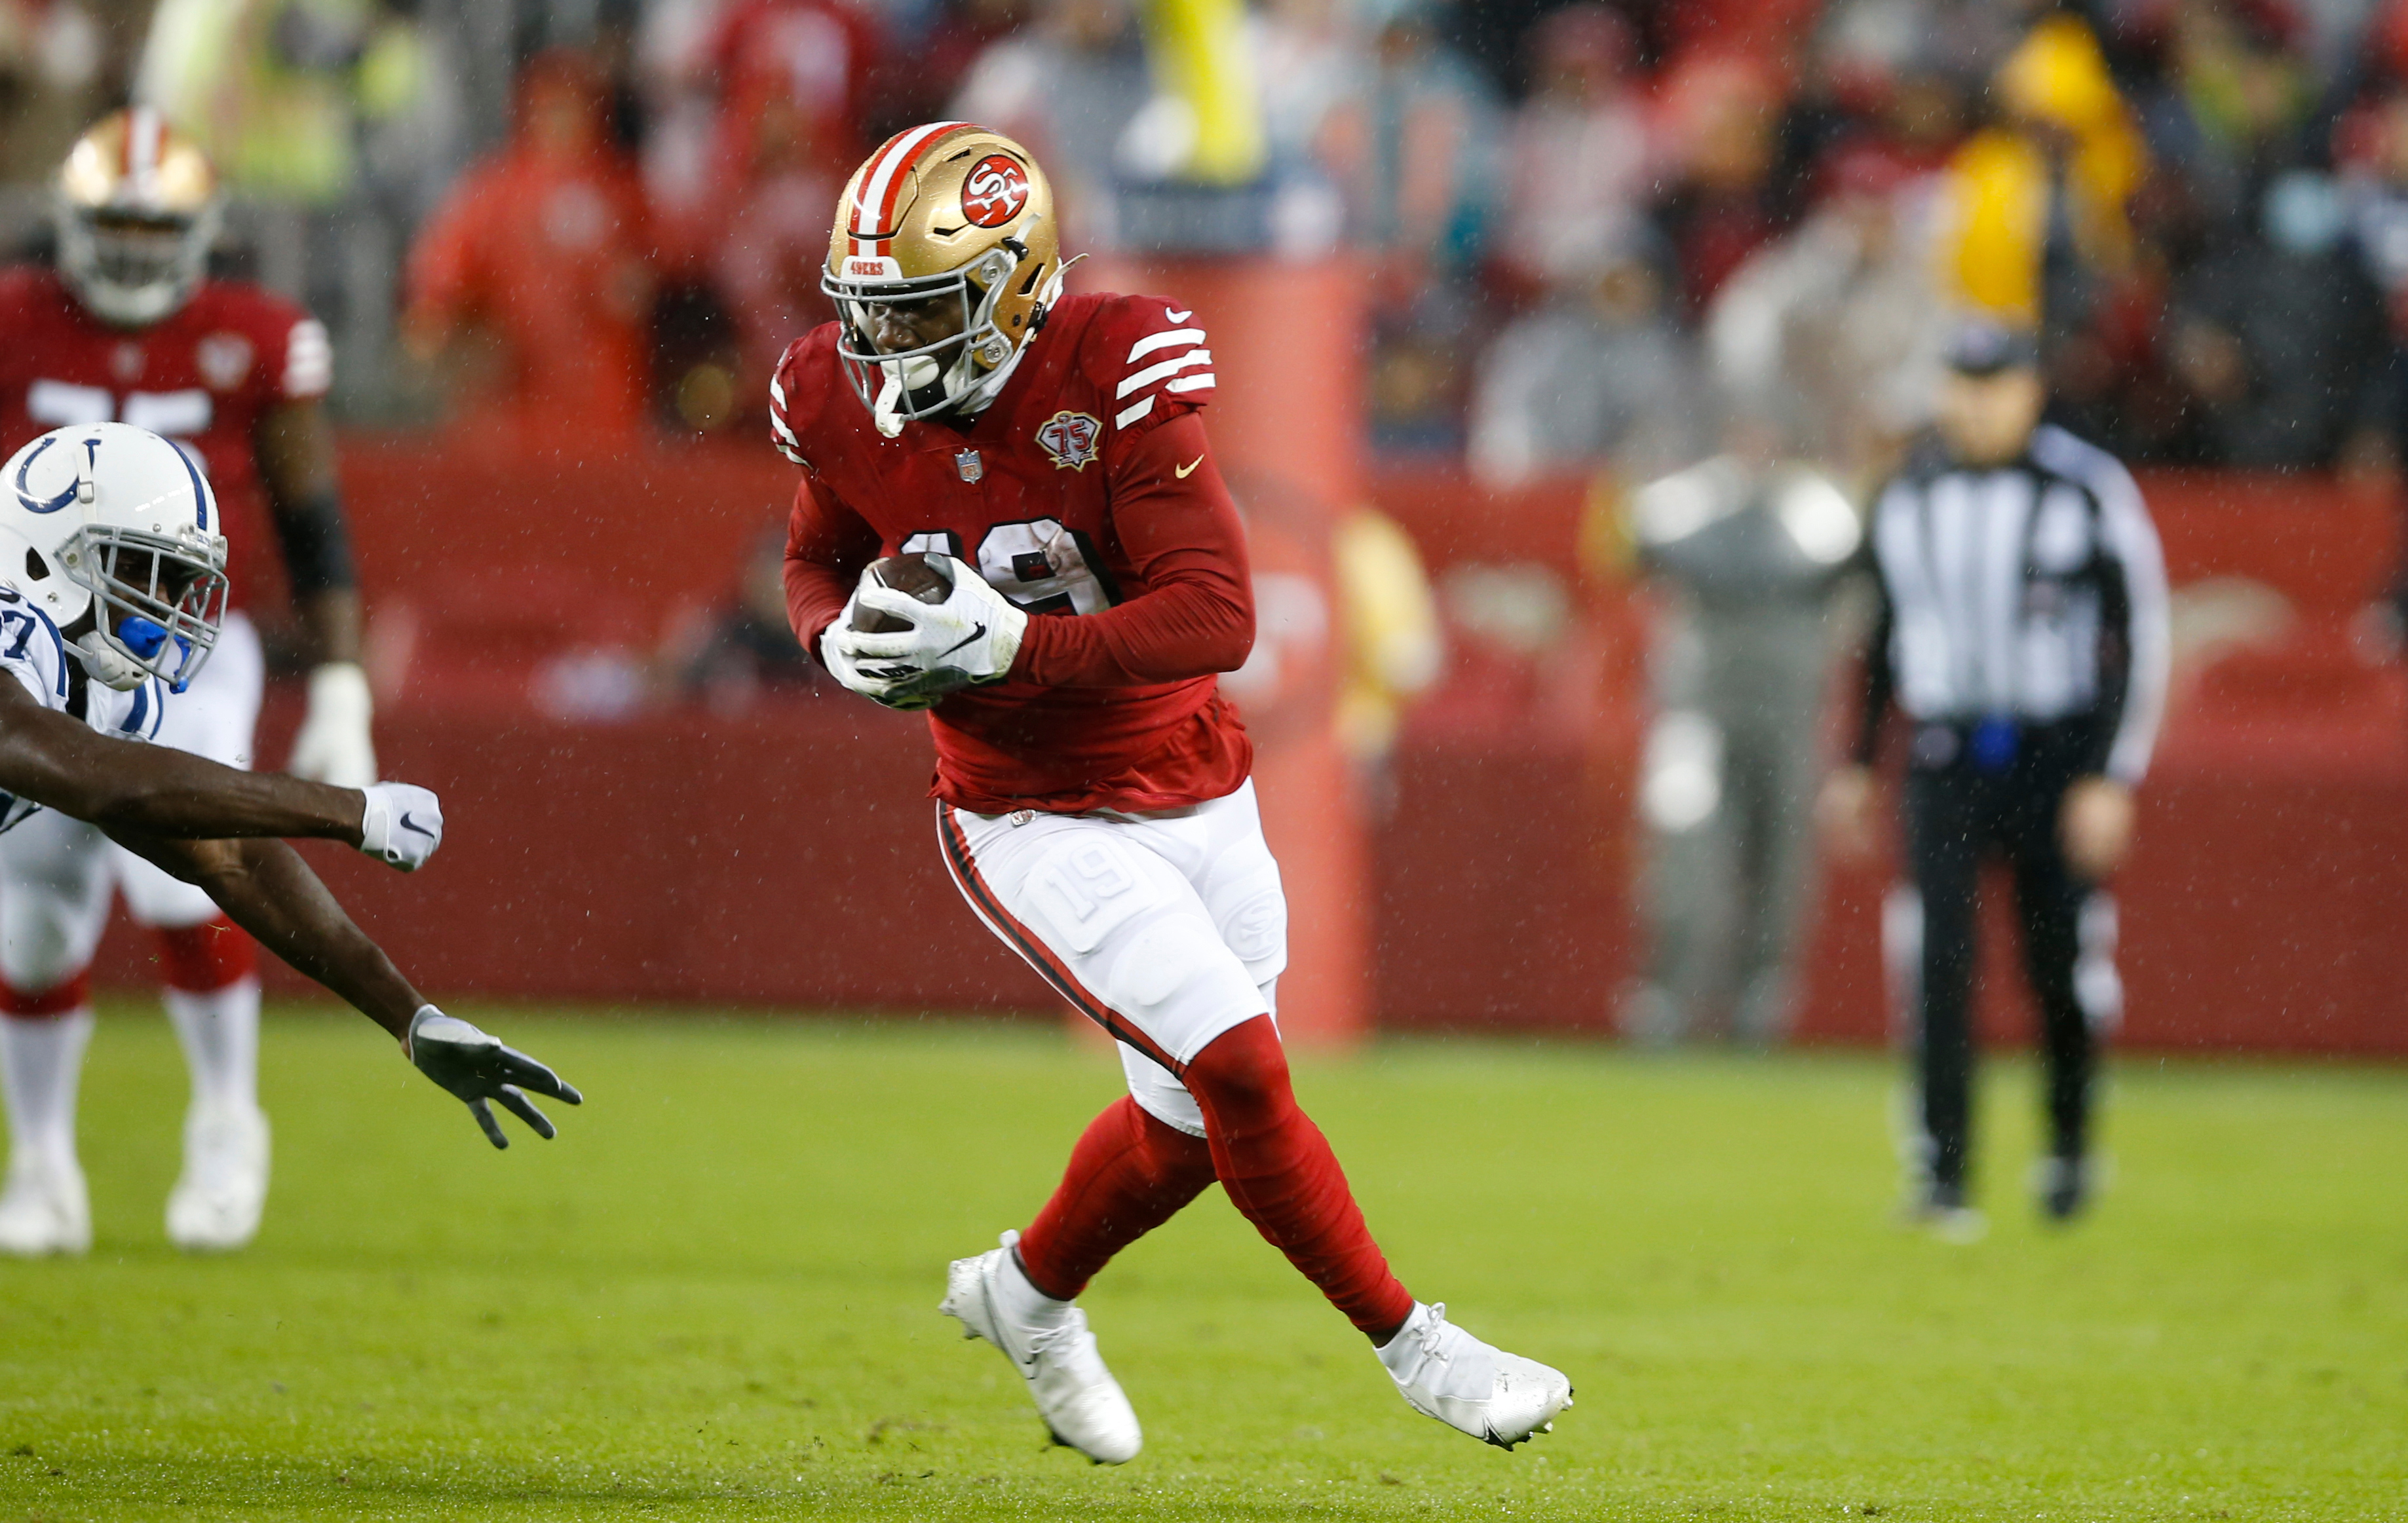 Deebo Samuel #19 of the San Francisco 49ers runs after making a catch during the game against the Indianapolis Colts at Levi's Stadium on October 24, 2021 in Santa Clara, California.